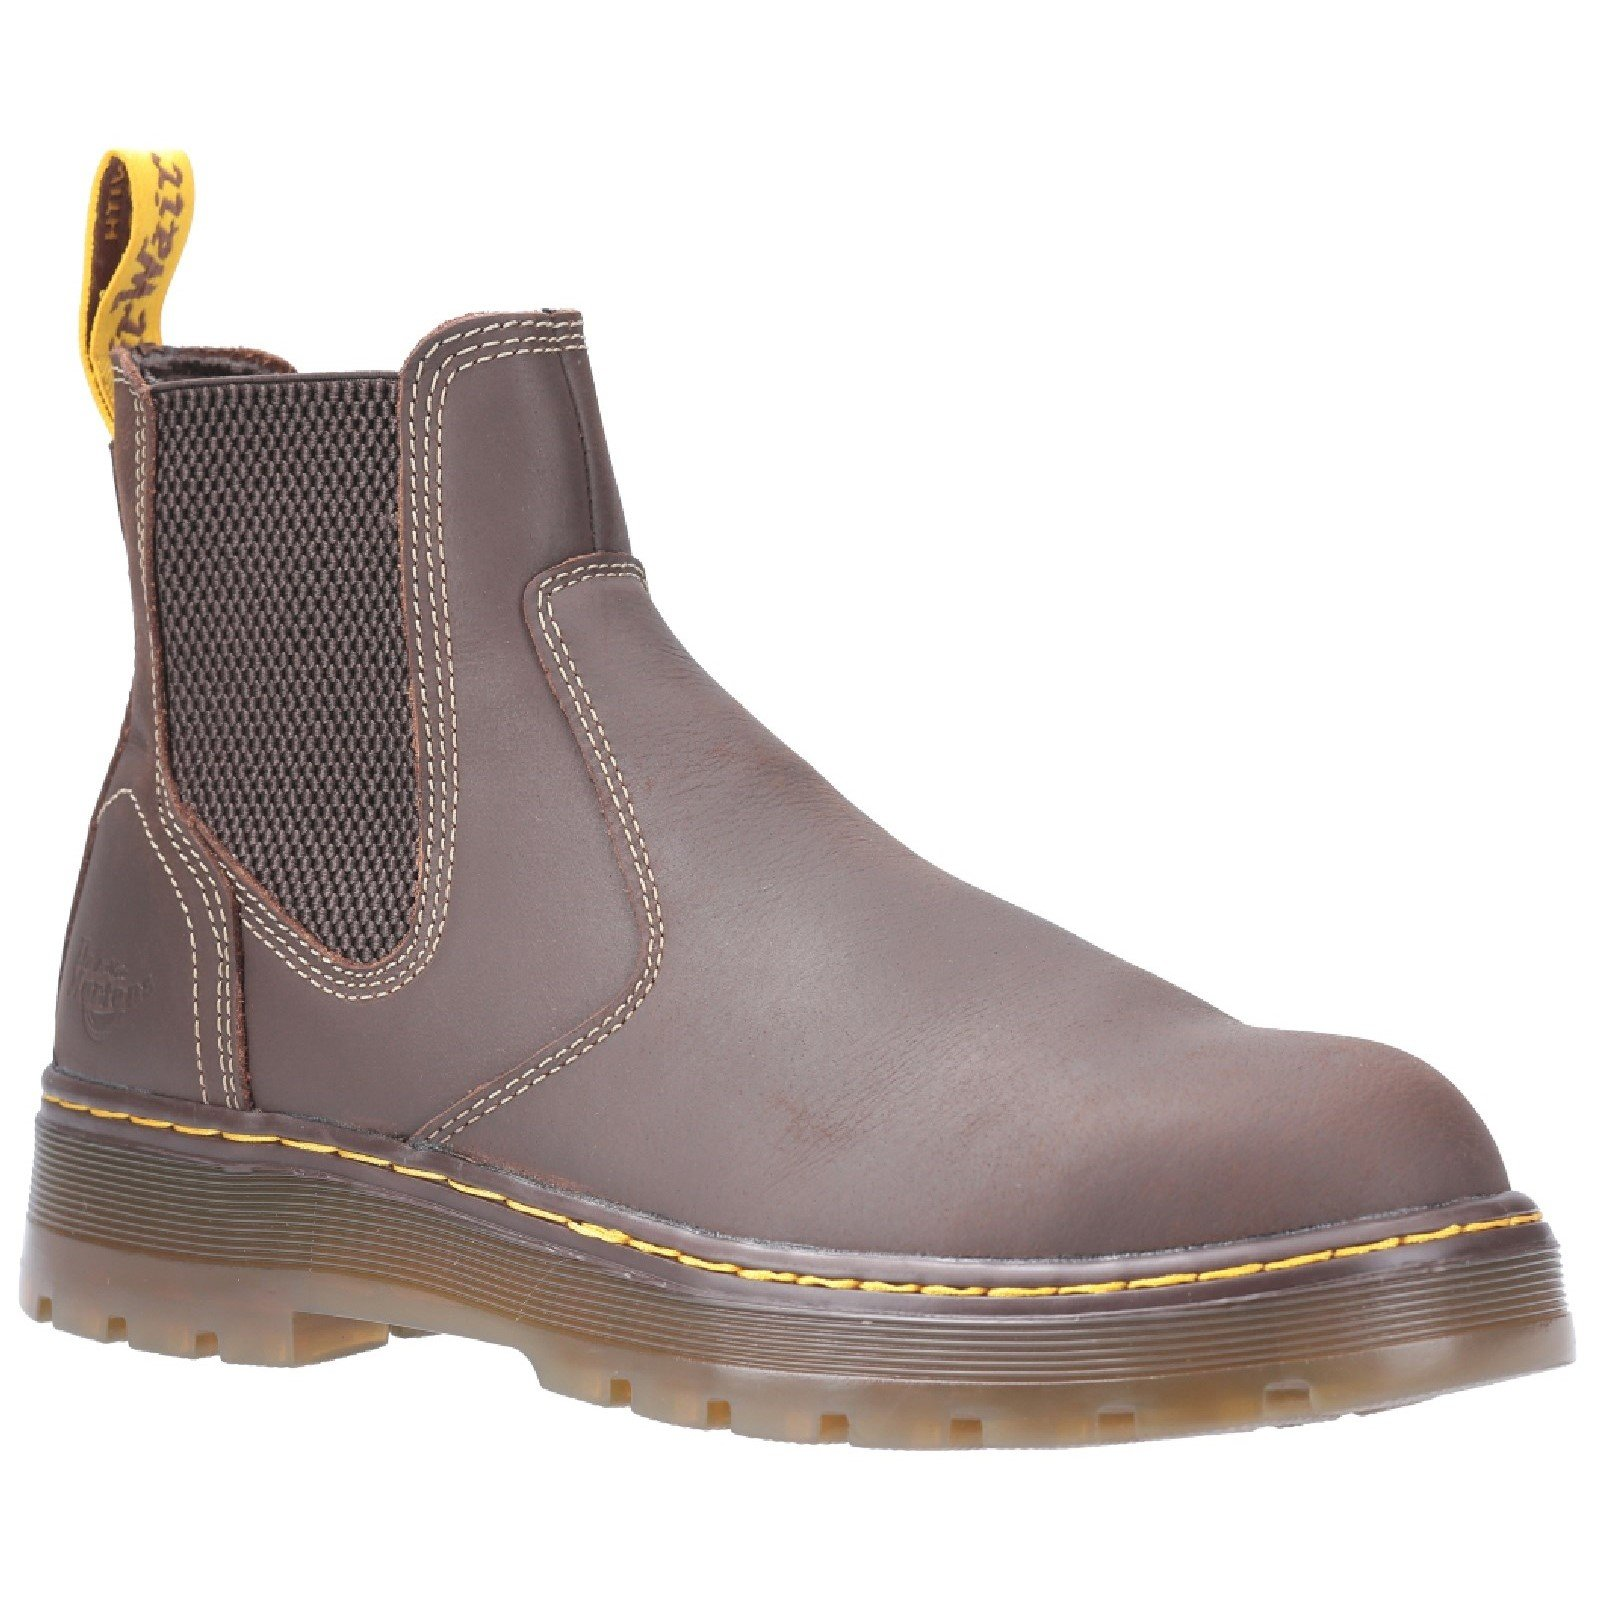 Dr Martens Unisex Eaves SB Elasticated Safety Boot Brown 29519 - Brown 4